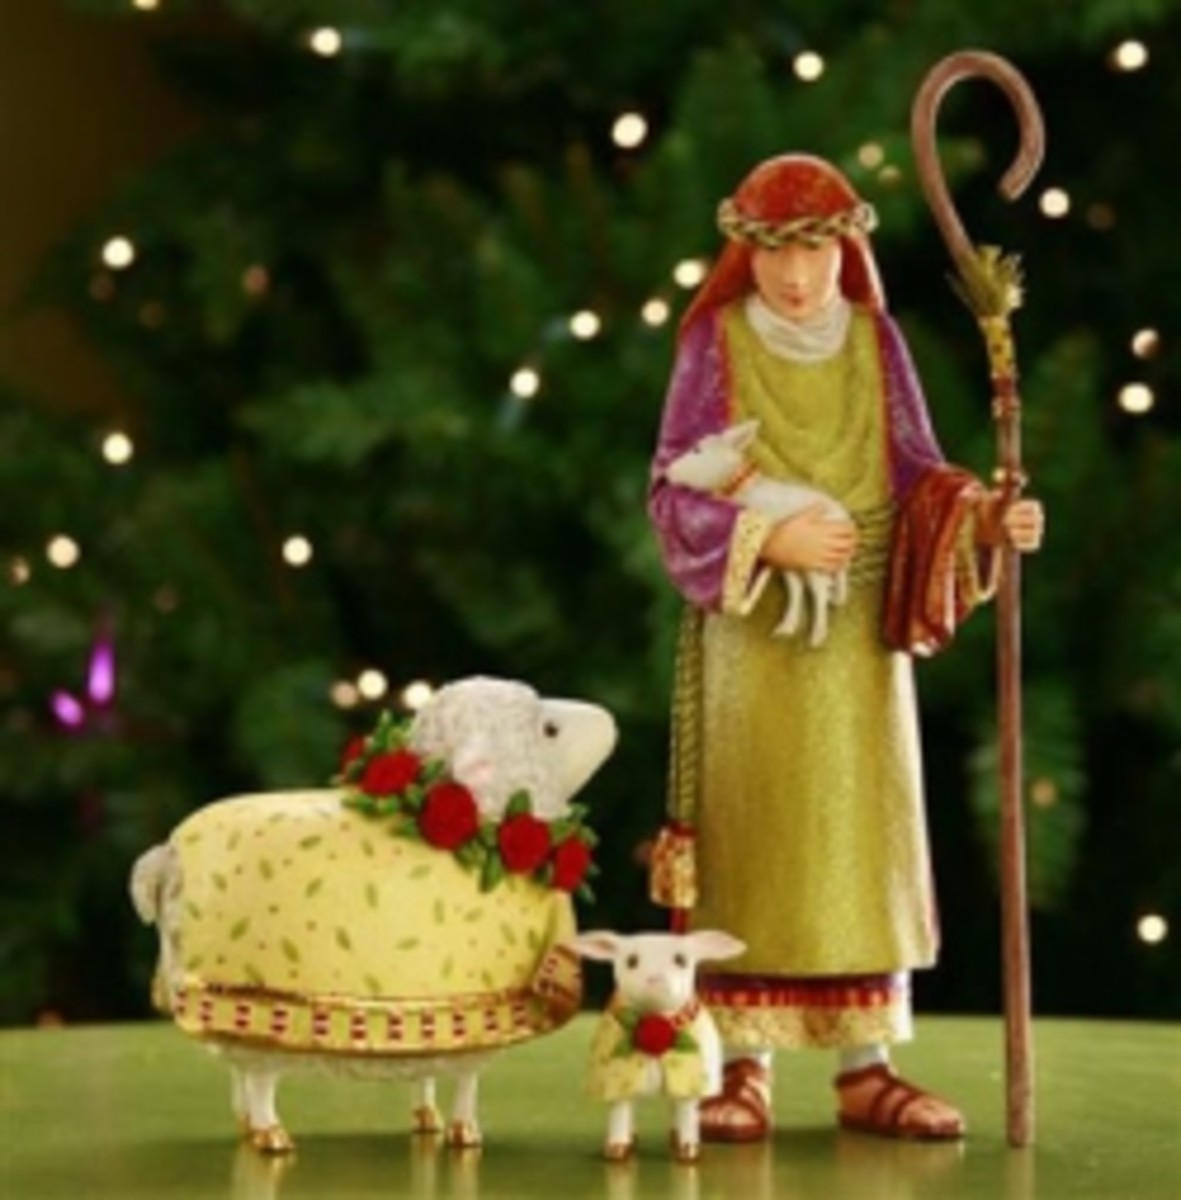 Patience Brewster Nativity Scene Figurines